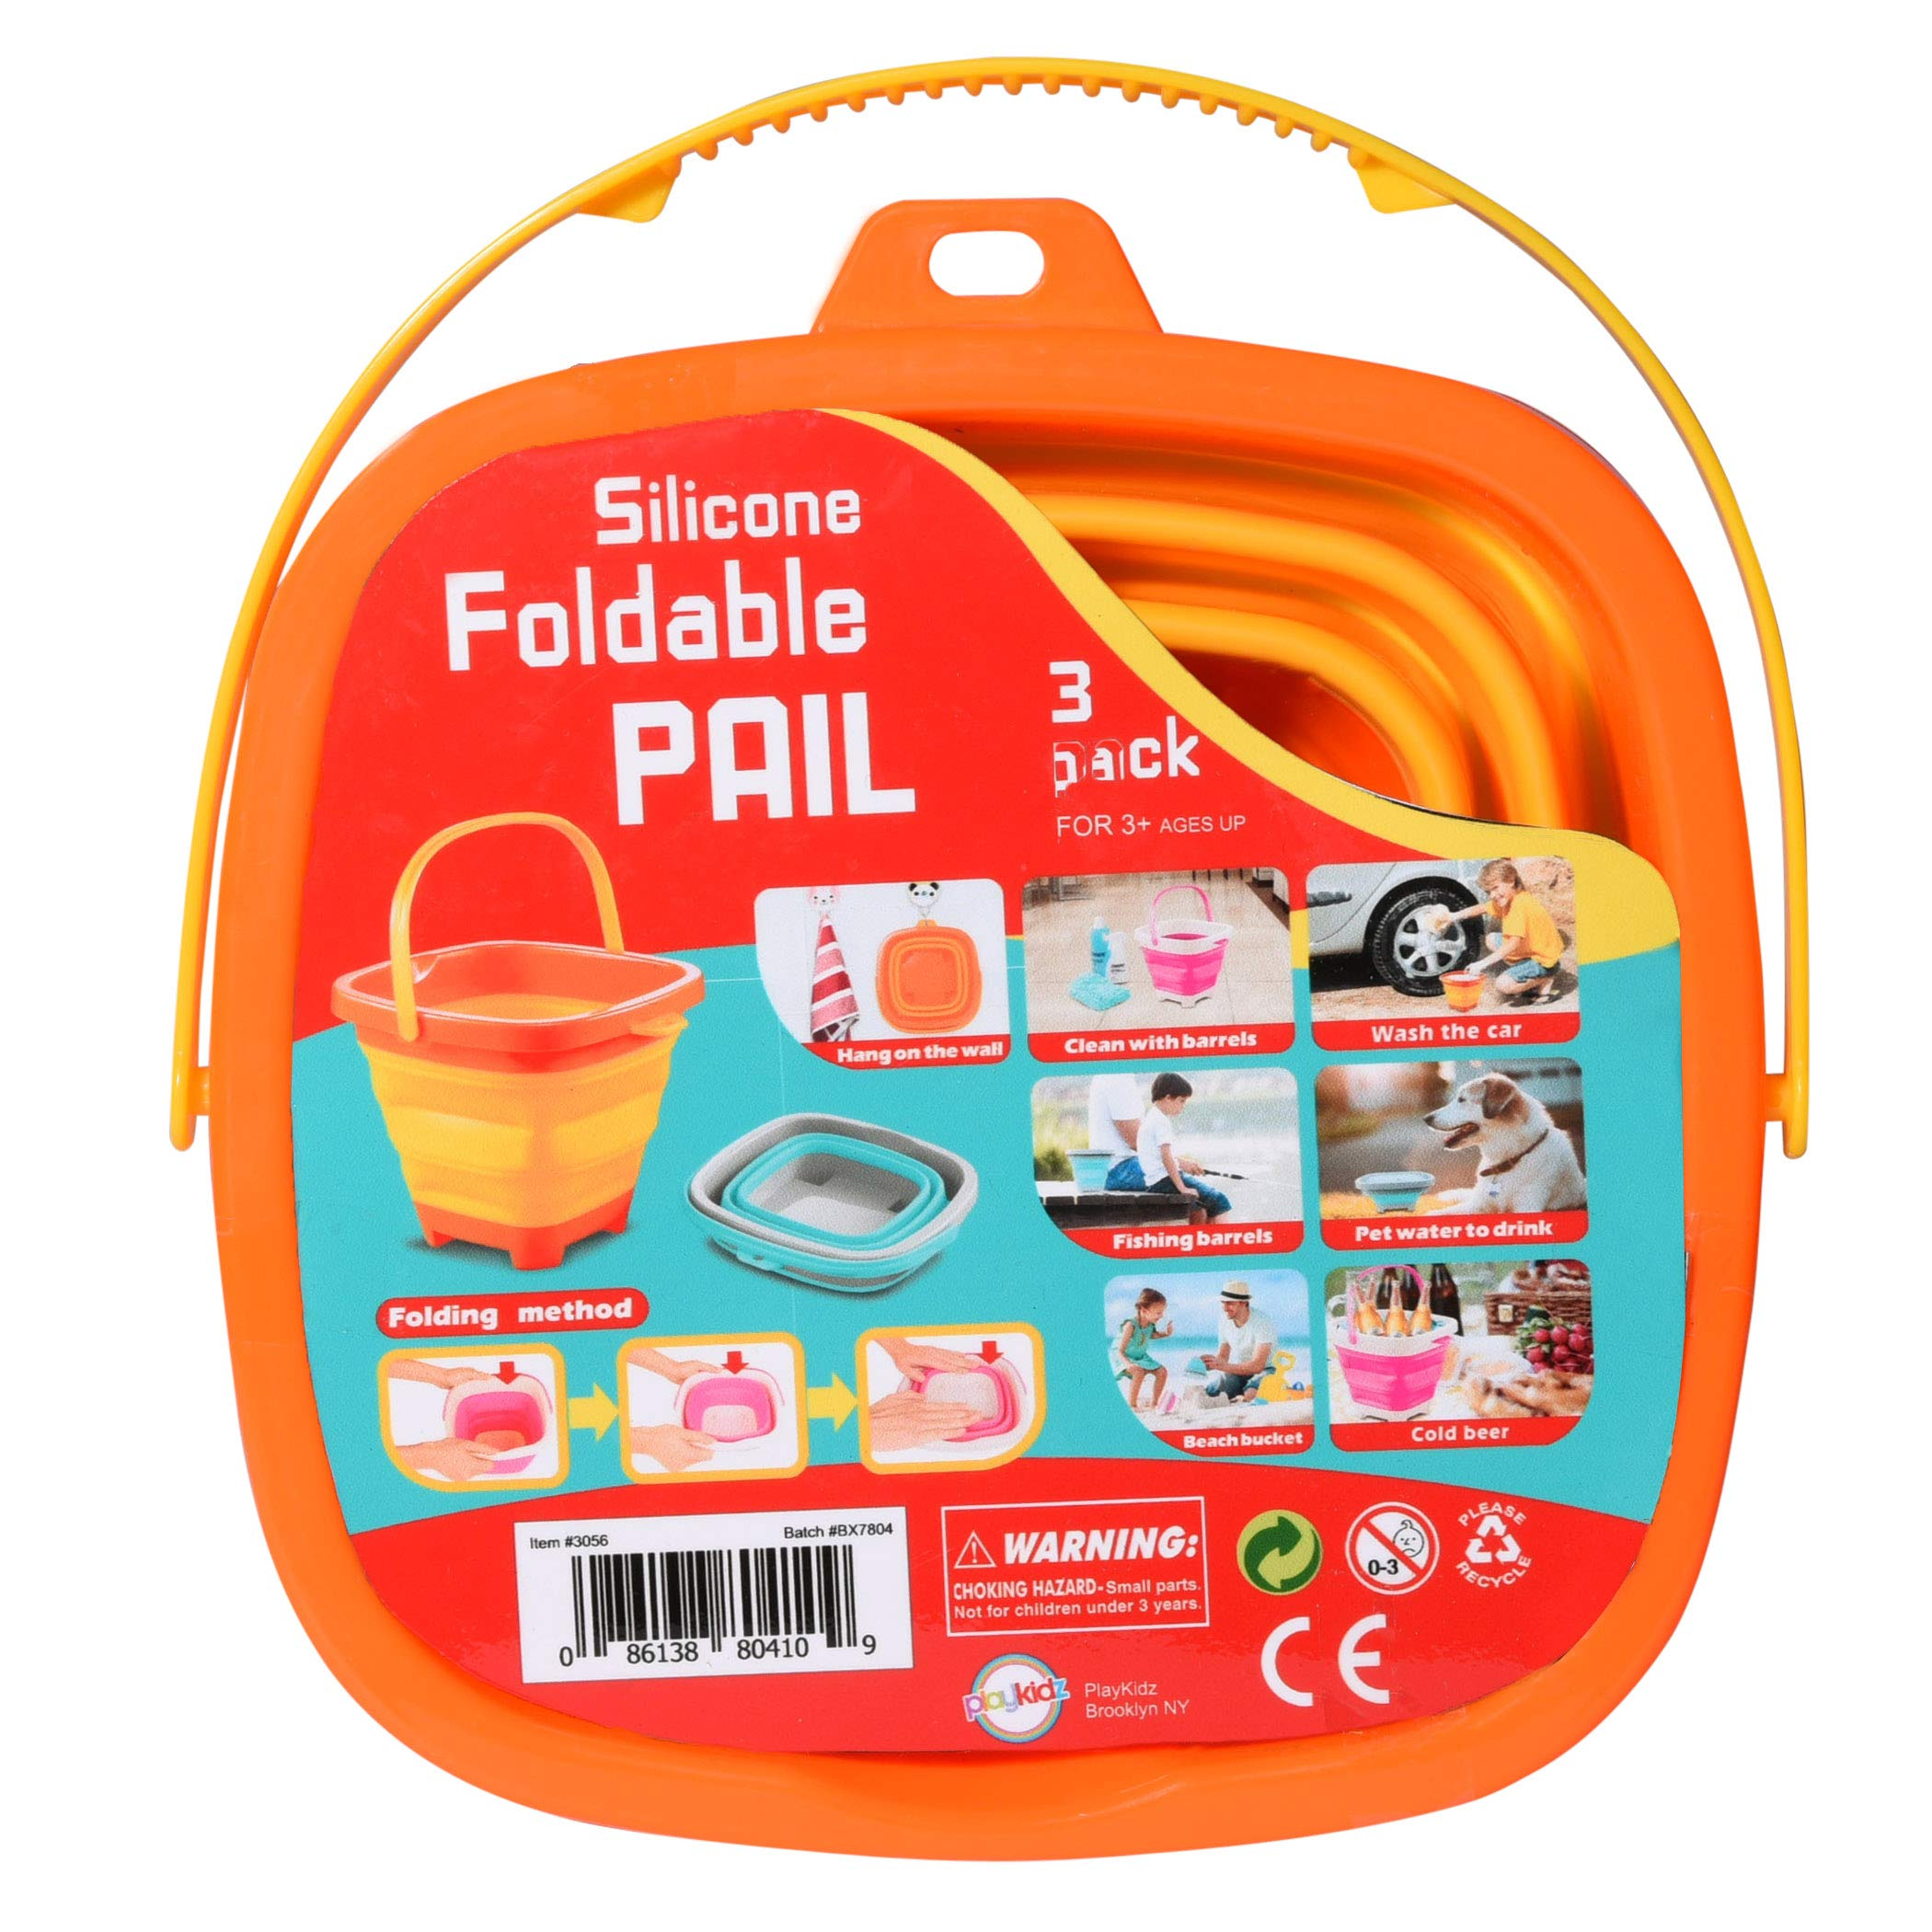 Playkidz Collapsible Bucket Set [3] Compact 2-Liter Silicone Folding Pails with Handle Great for Camping, Backpacking, Cleaning, Car Wash, Fishing, Party Drinks, Kids Beach Play & More Ages 3+